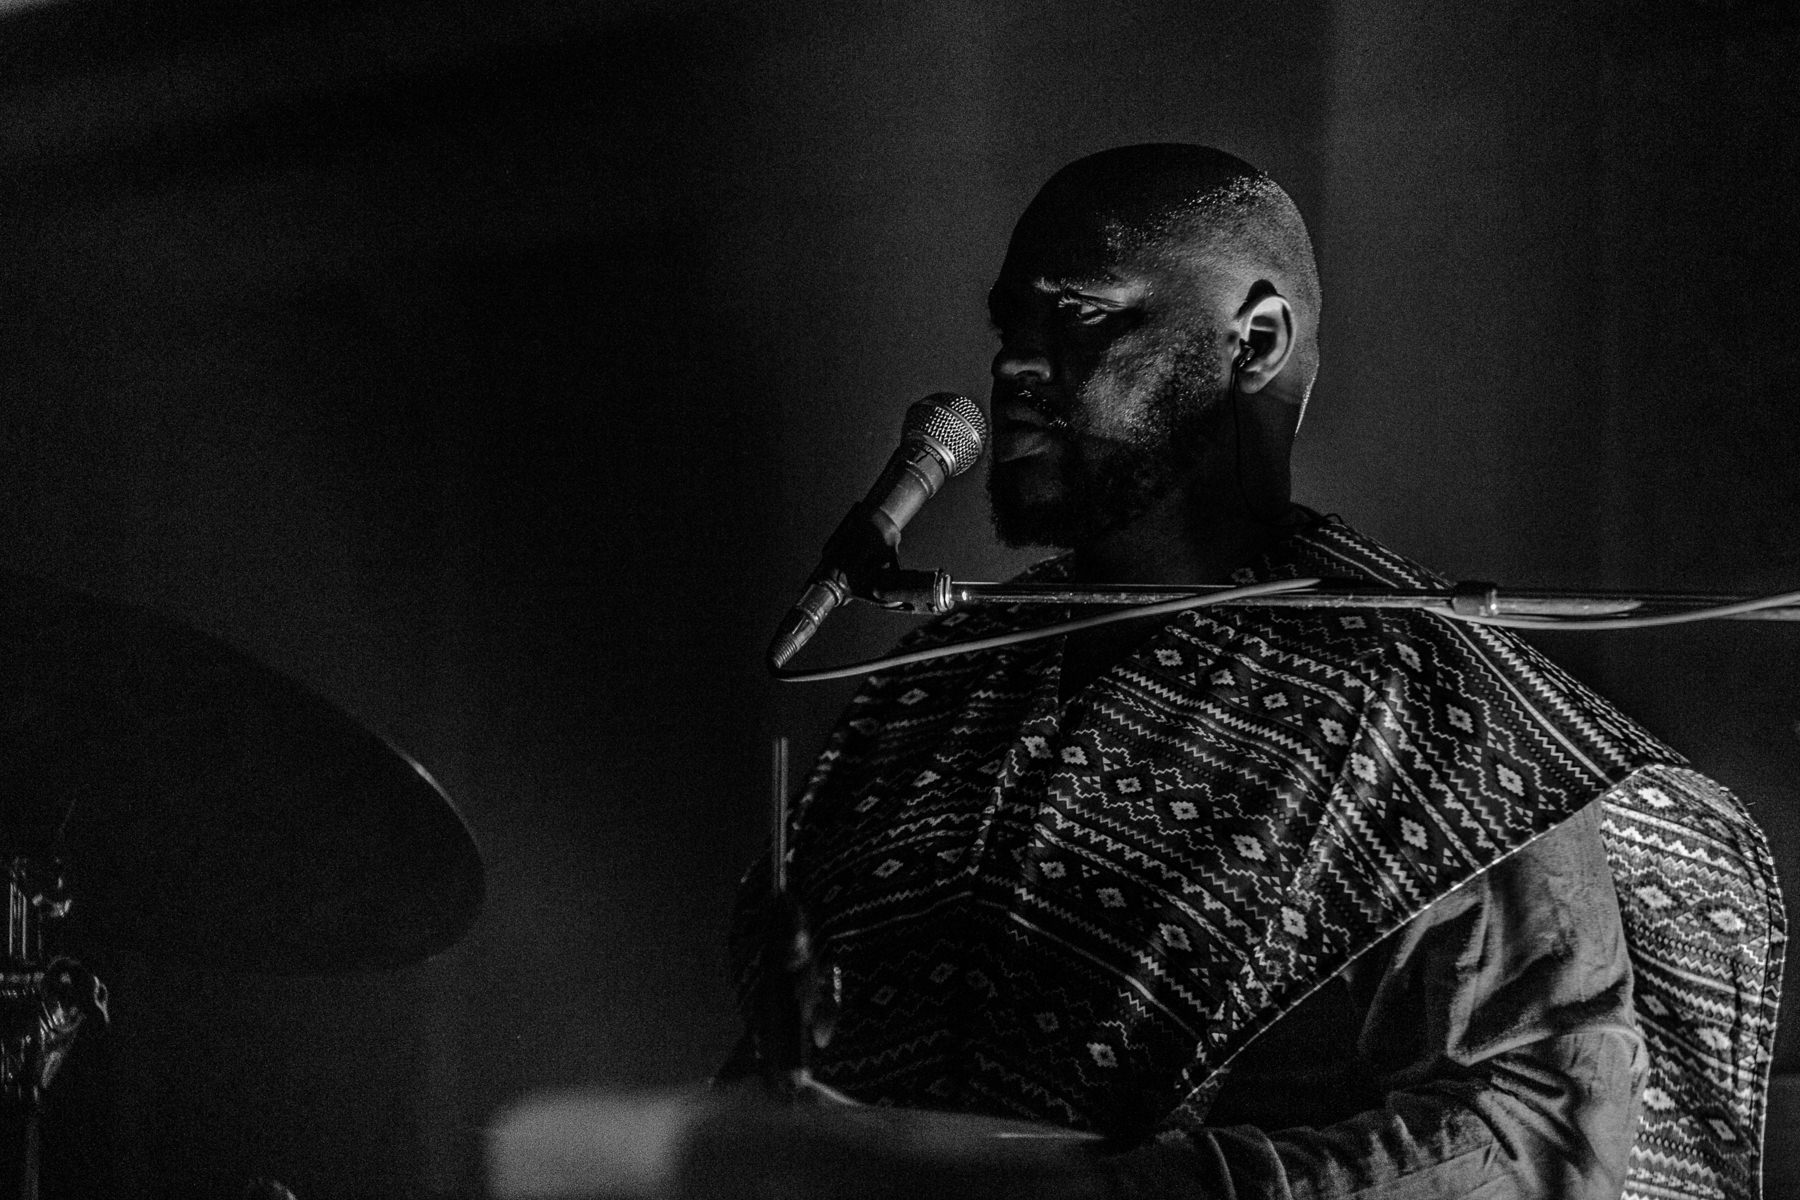 180326-kirby-gladstein-photograpy-khruangbin-concert-lodge-room-los-angeles-2616.jpg